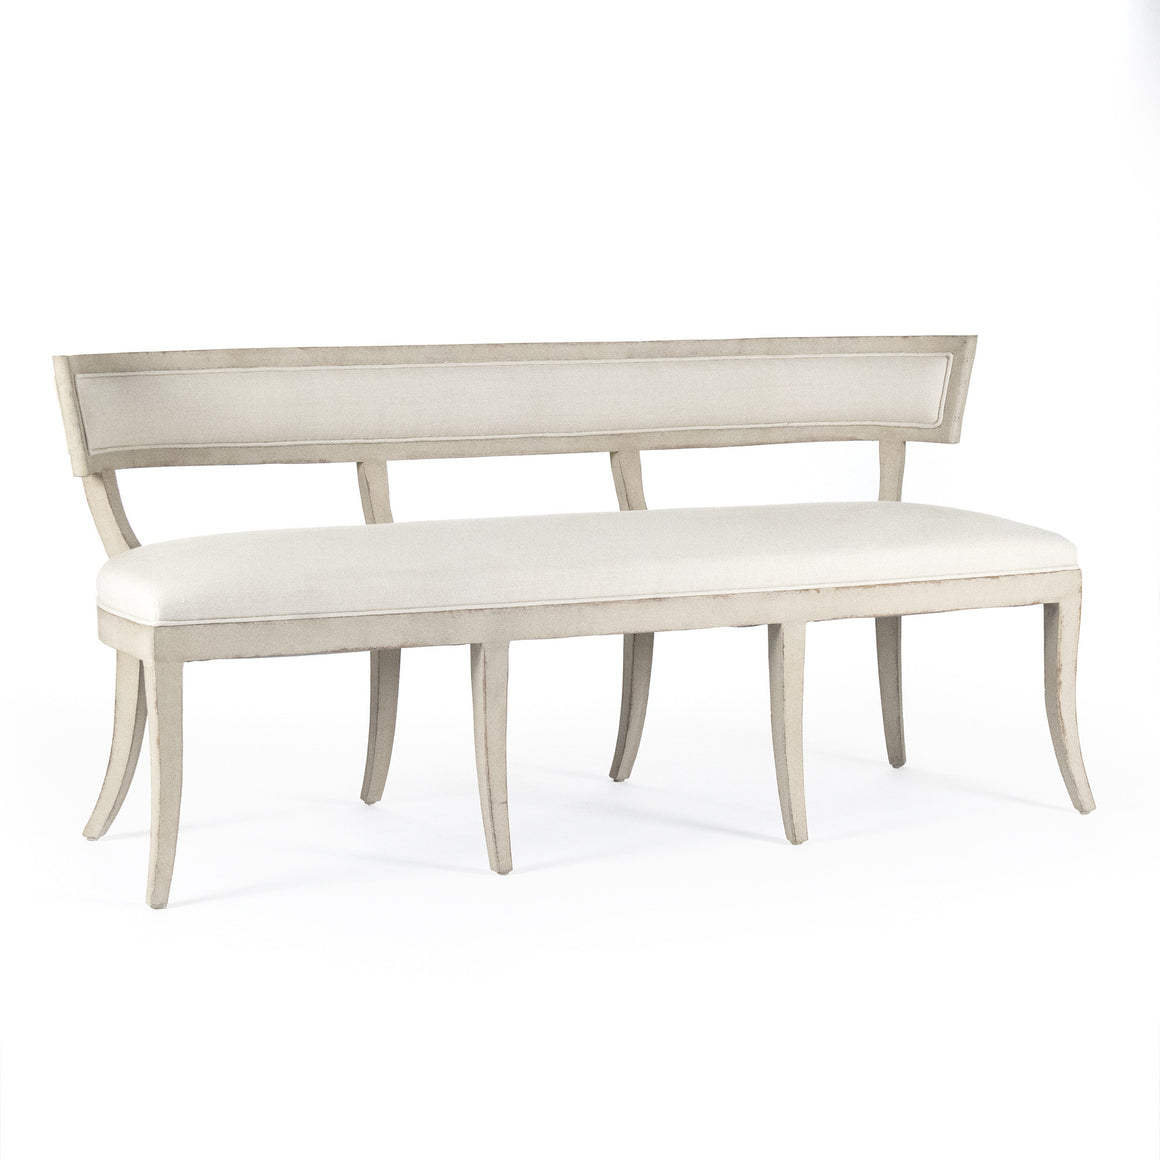 Bench - Lorand Bench